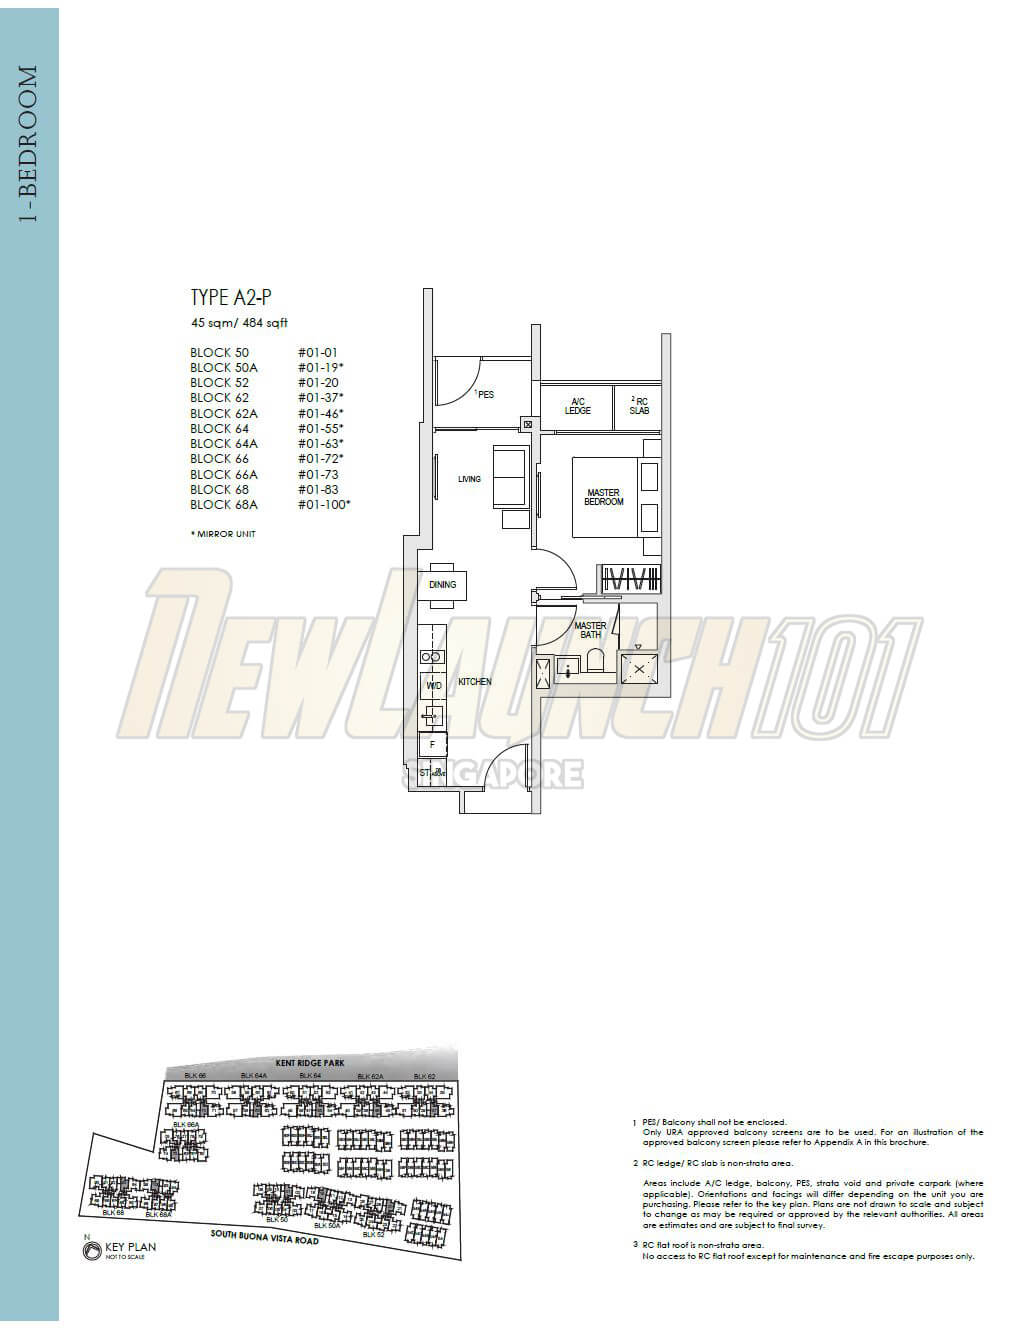 hight resolution of kent ridge hill residences floor plan 1 bedroom type a2 p